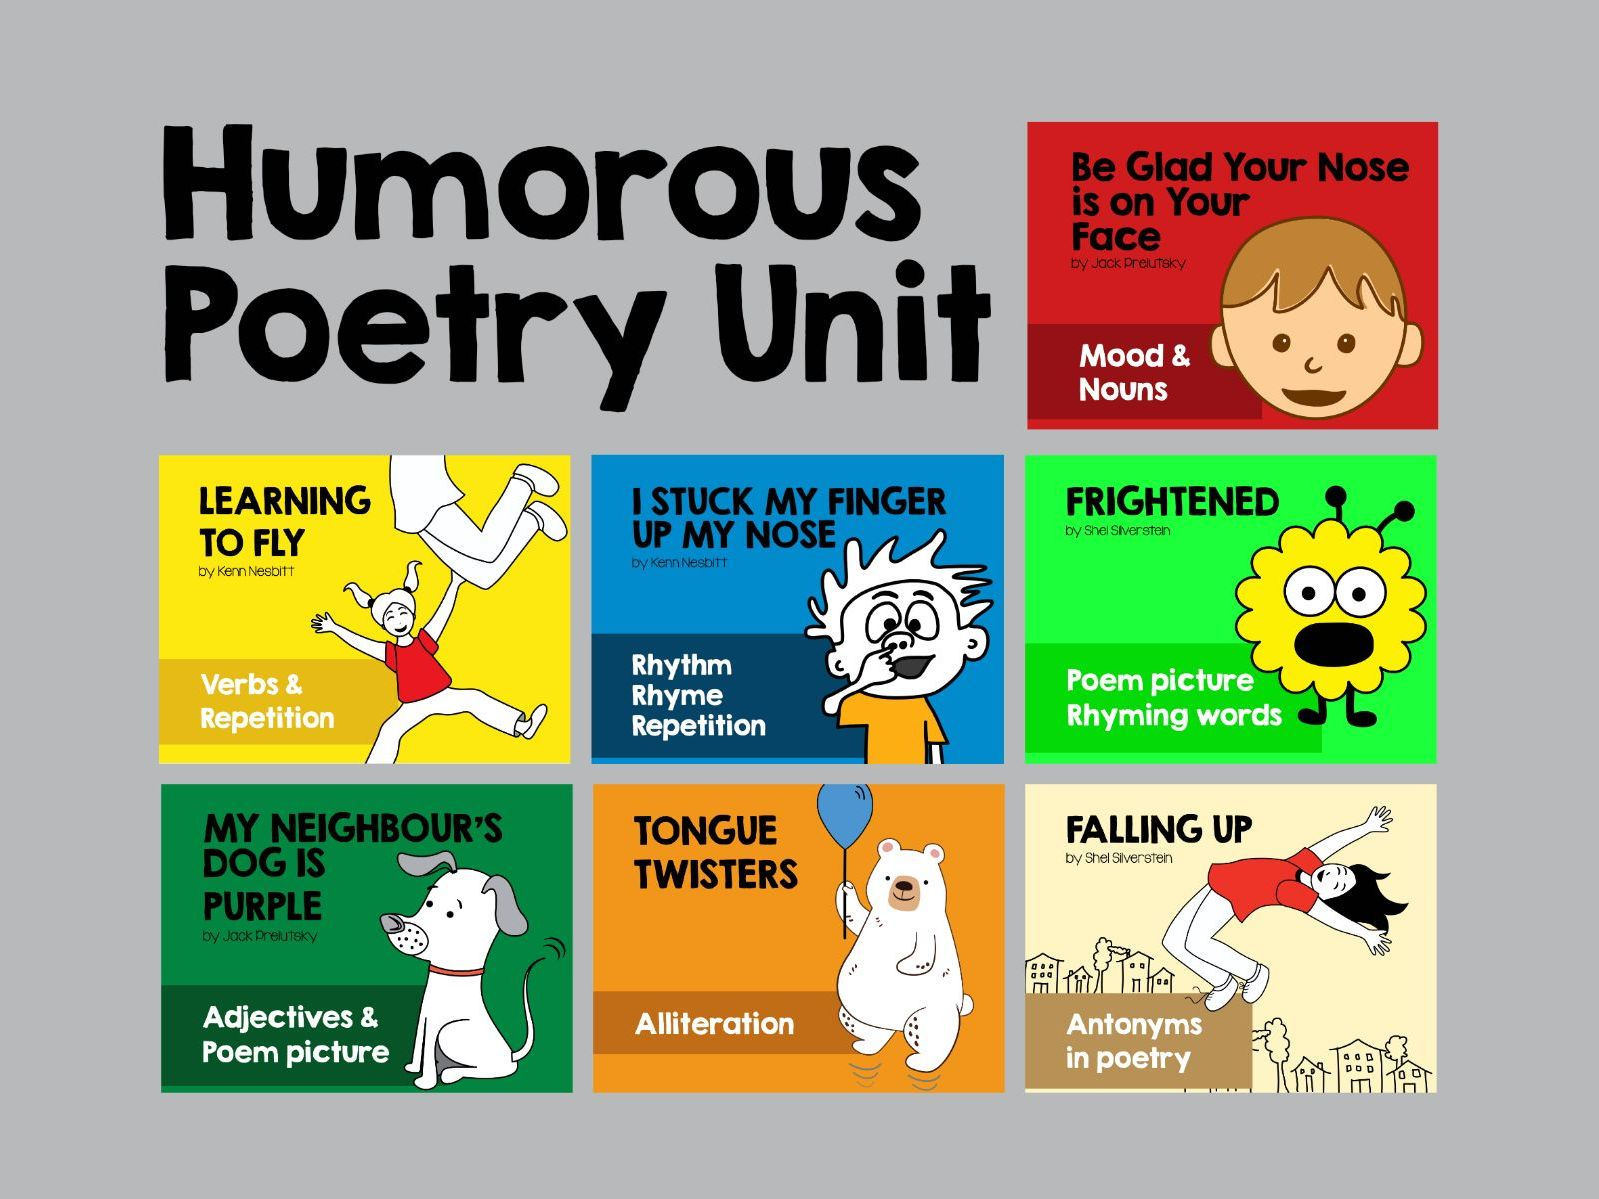 Humorous Poetry Unit. 8 poetry lessons + worksheets.